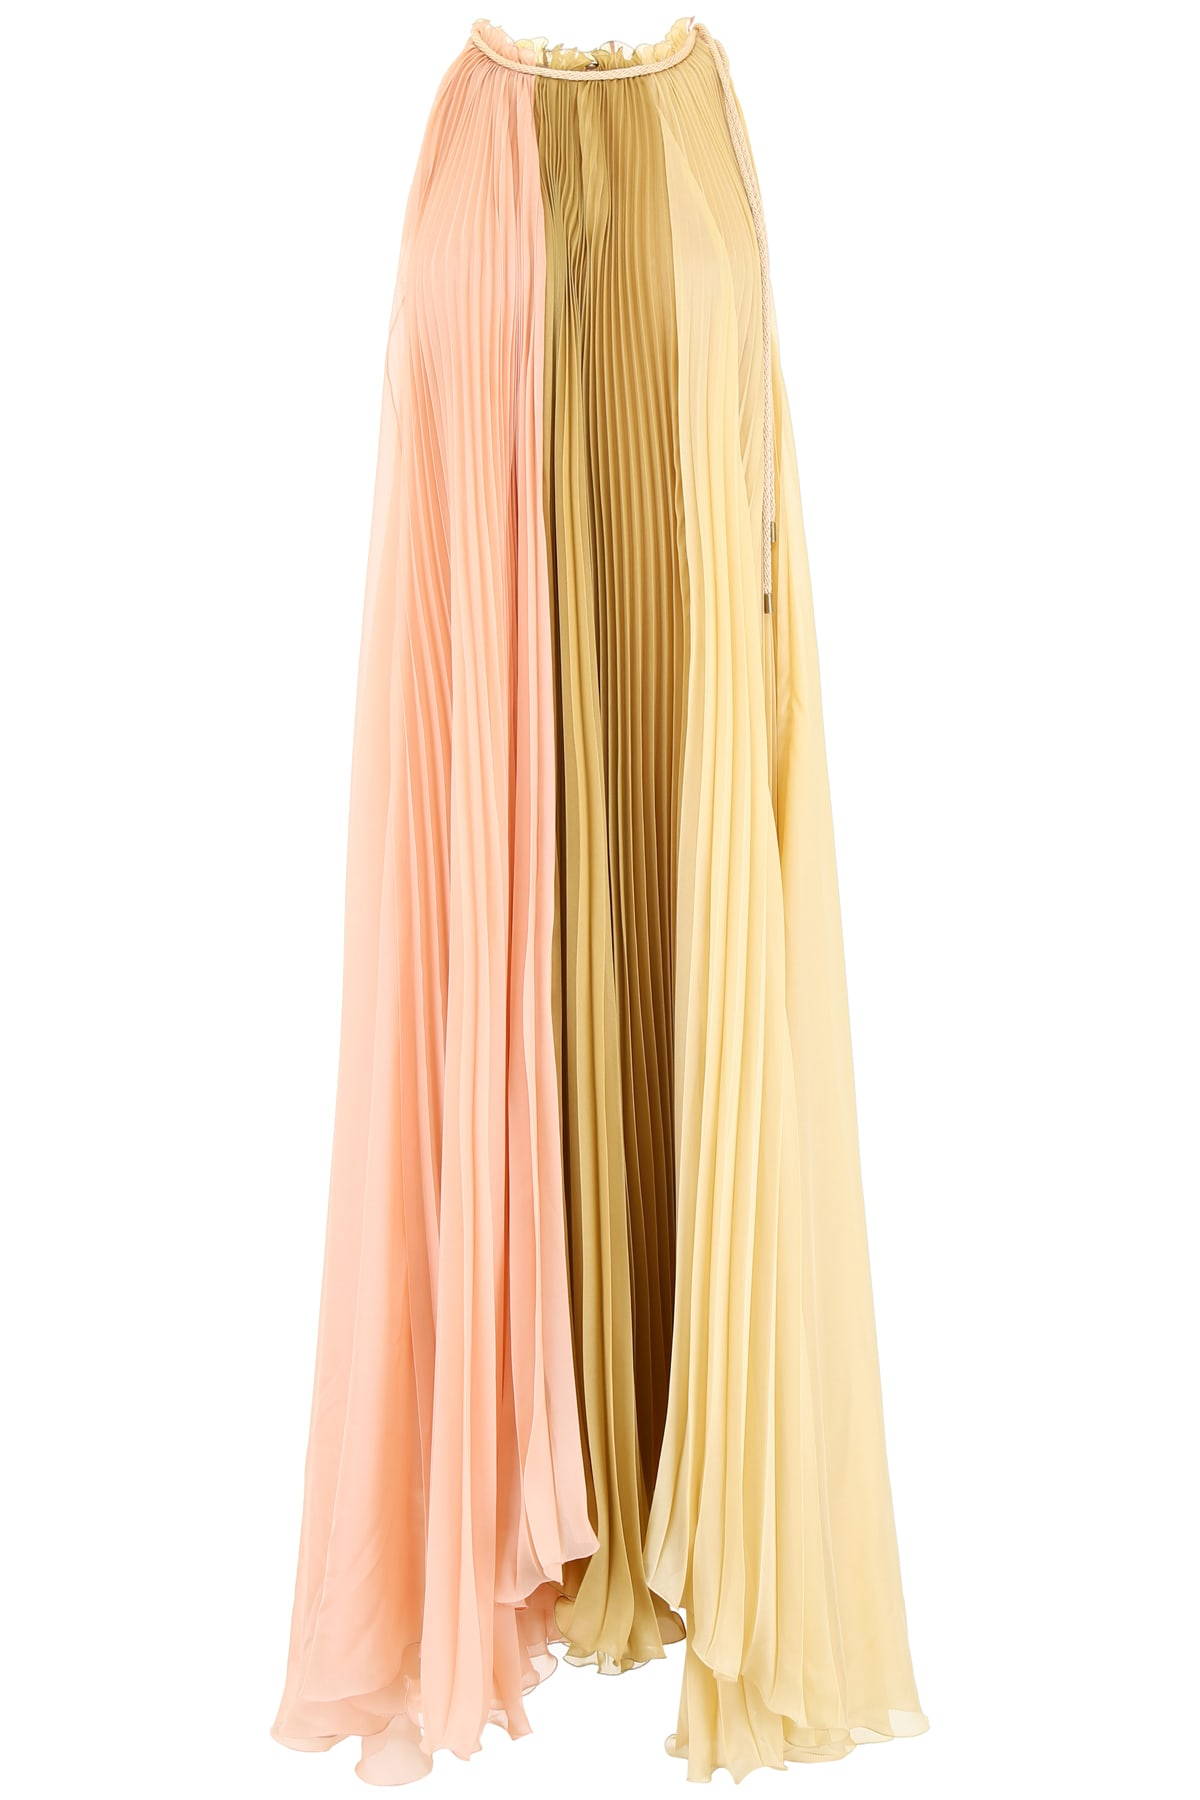 Alberta Ferretti Pleated Dress